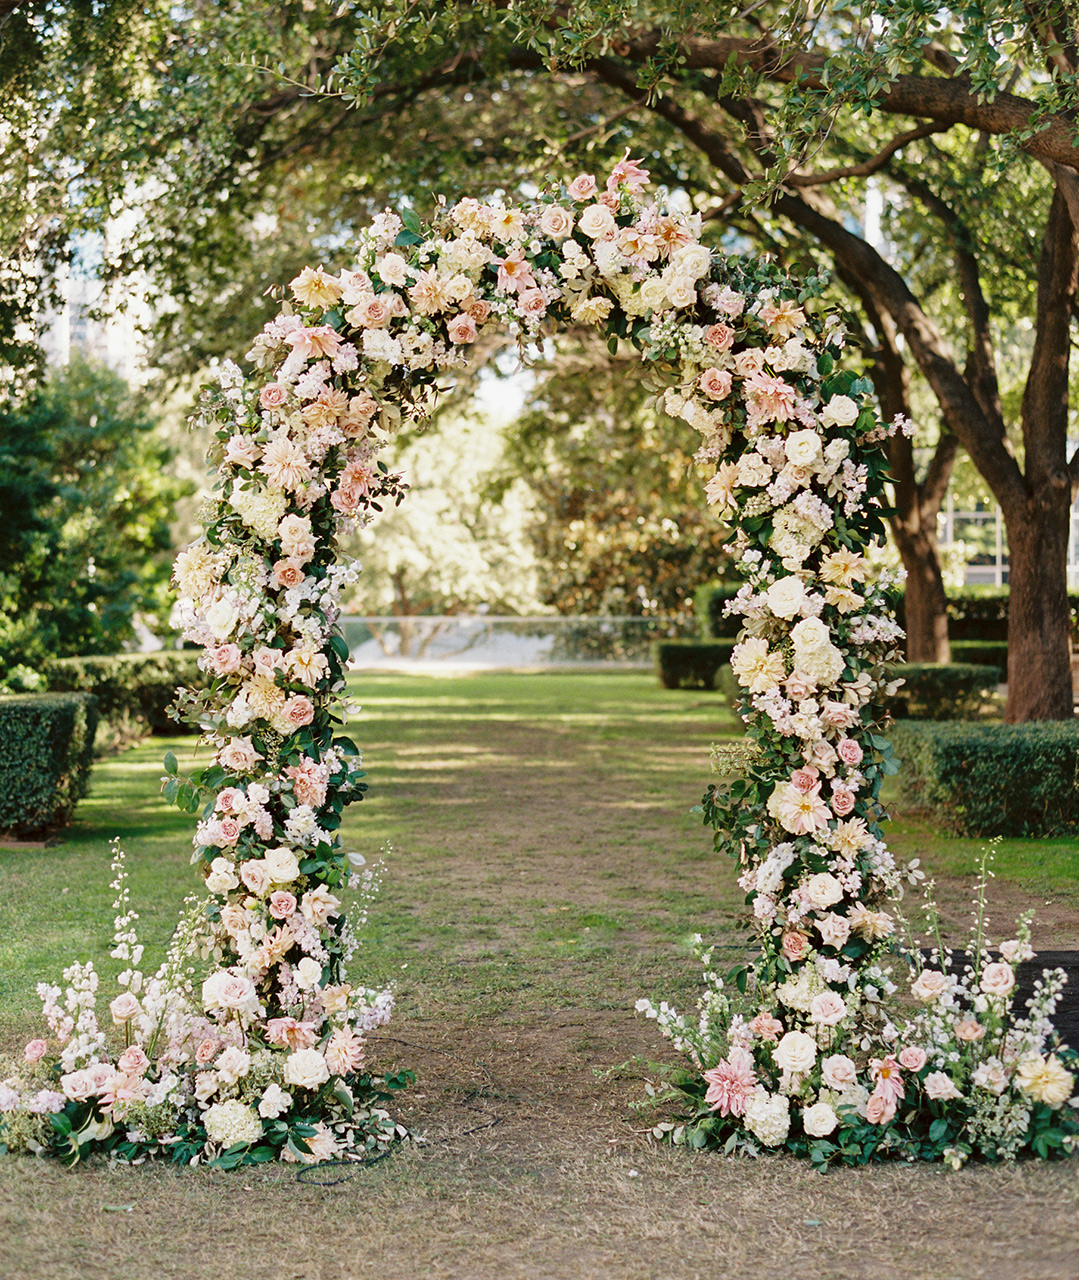 floral arch color scheme of white, blush, ivory, and greenery